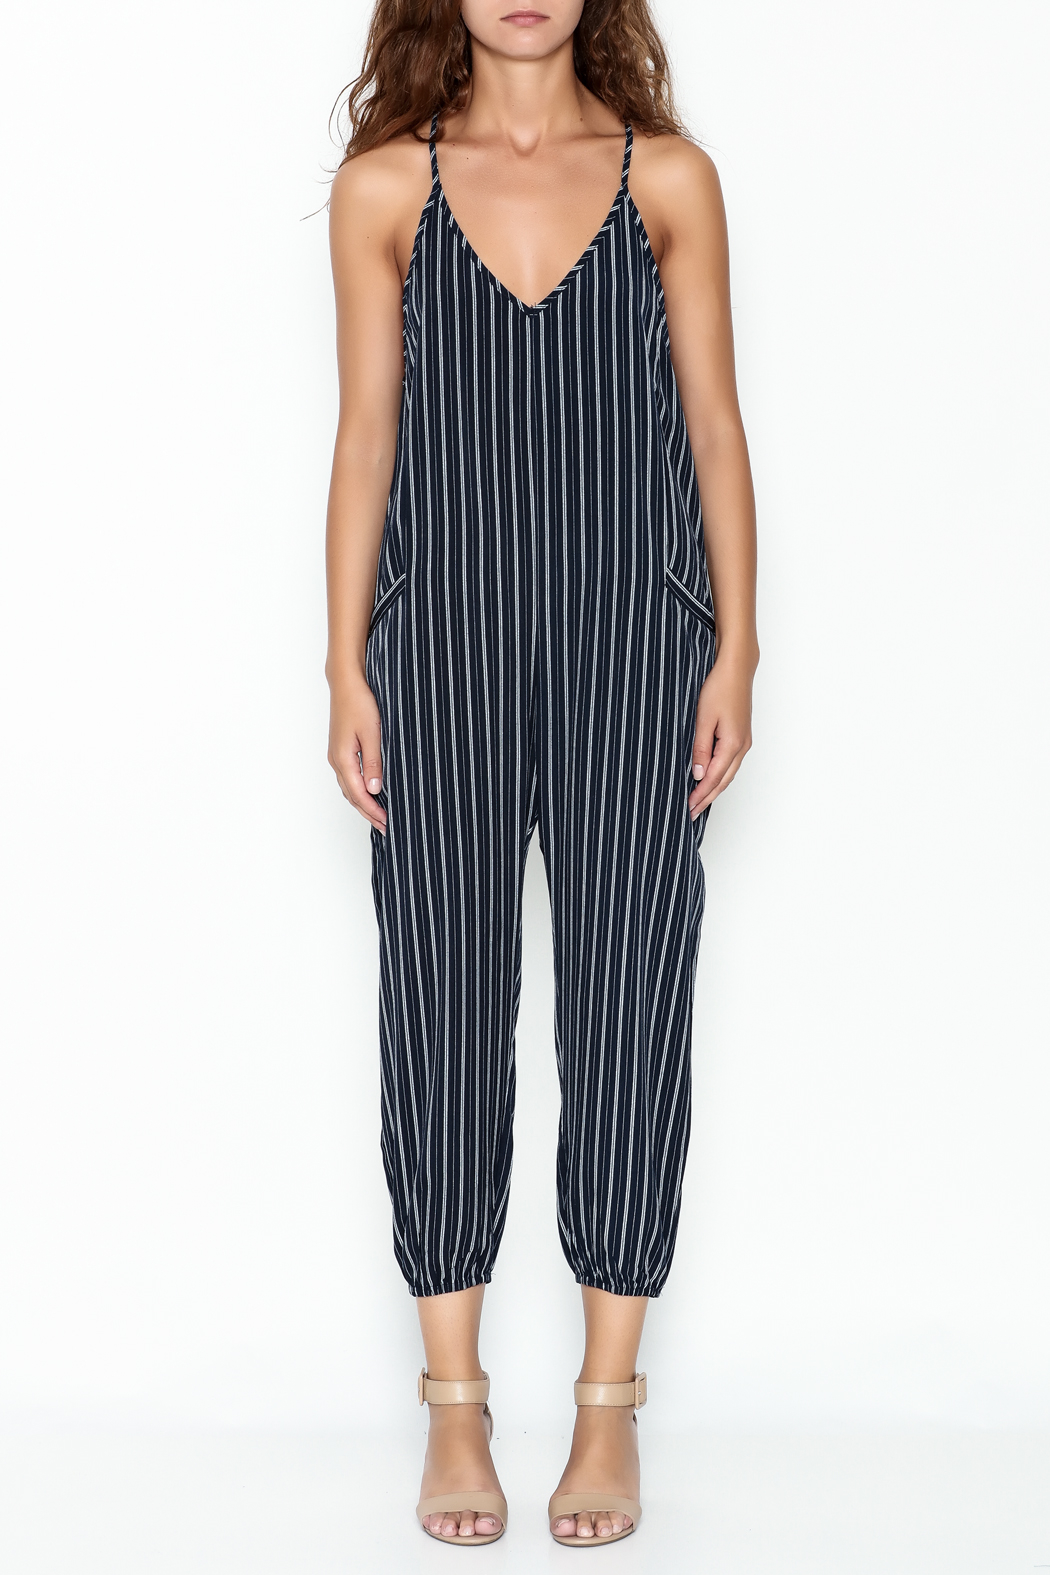 Dress Forum Navy Striped Jumpsuit From New York By Dor Ldor